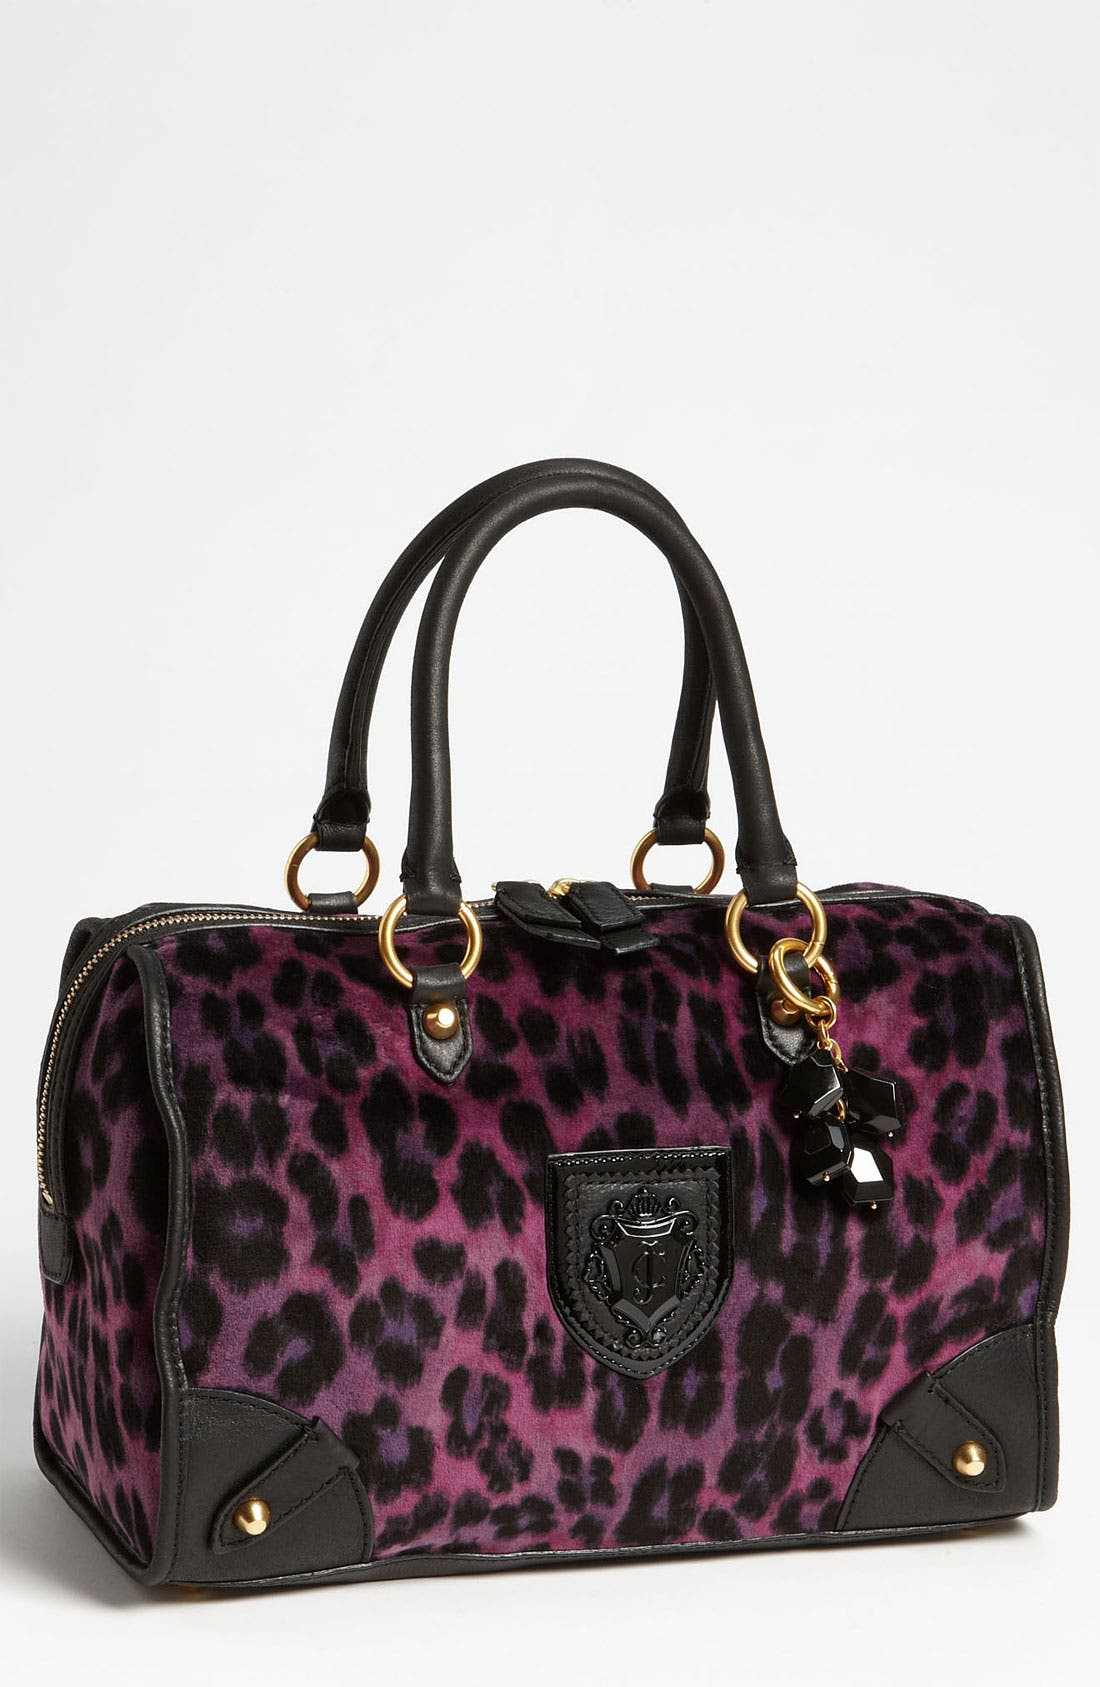 Main Image - Juicy Couture 'Wild Things - Steffy' Satchel